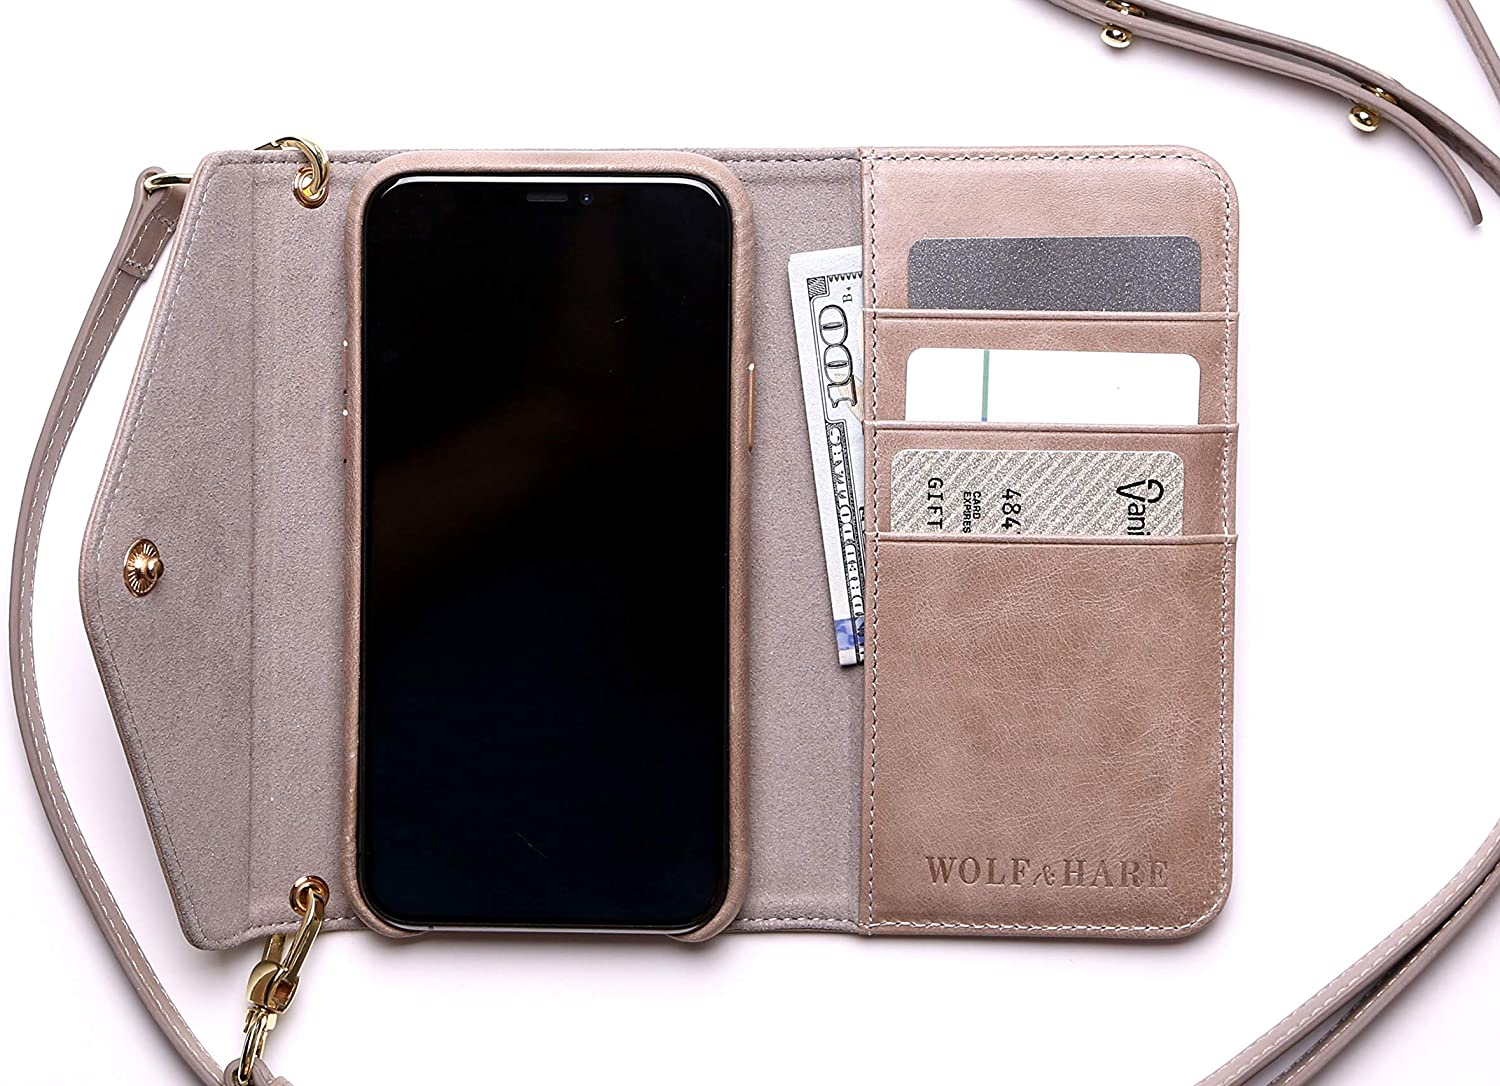 Wolf & Hare Beige Leather Phone Wallet Purse for iPhone 11 Pro Max - Luxury Crossbody Phone Wallet - iPhone Wallet Purse with Strap - Magnetic Closure - 3 Credit Card Slots - Great Gift for Women